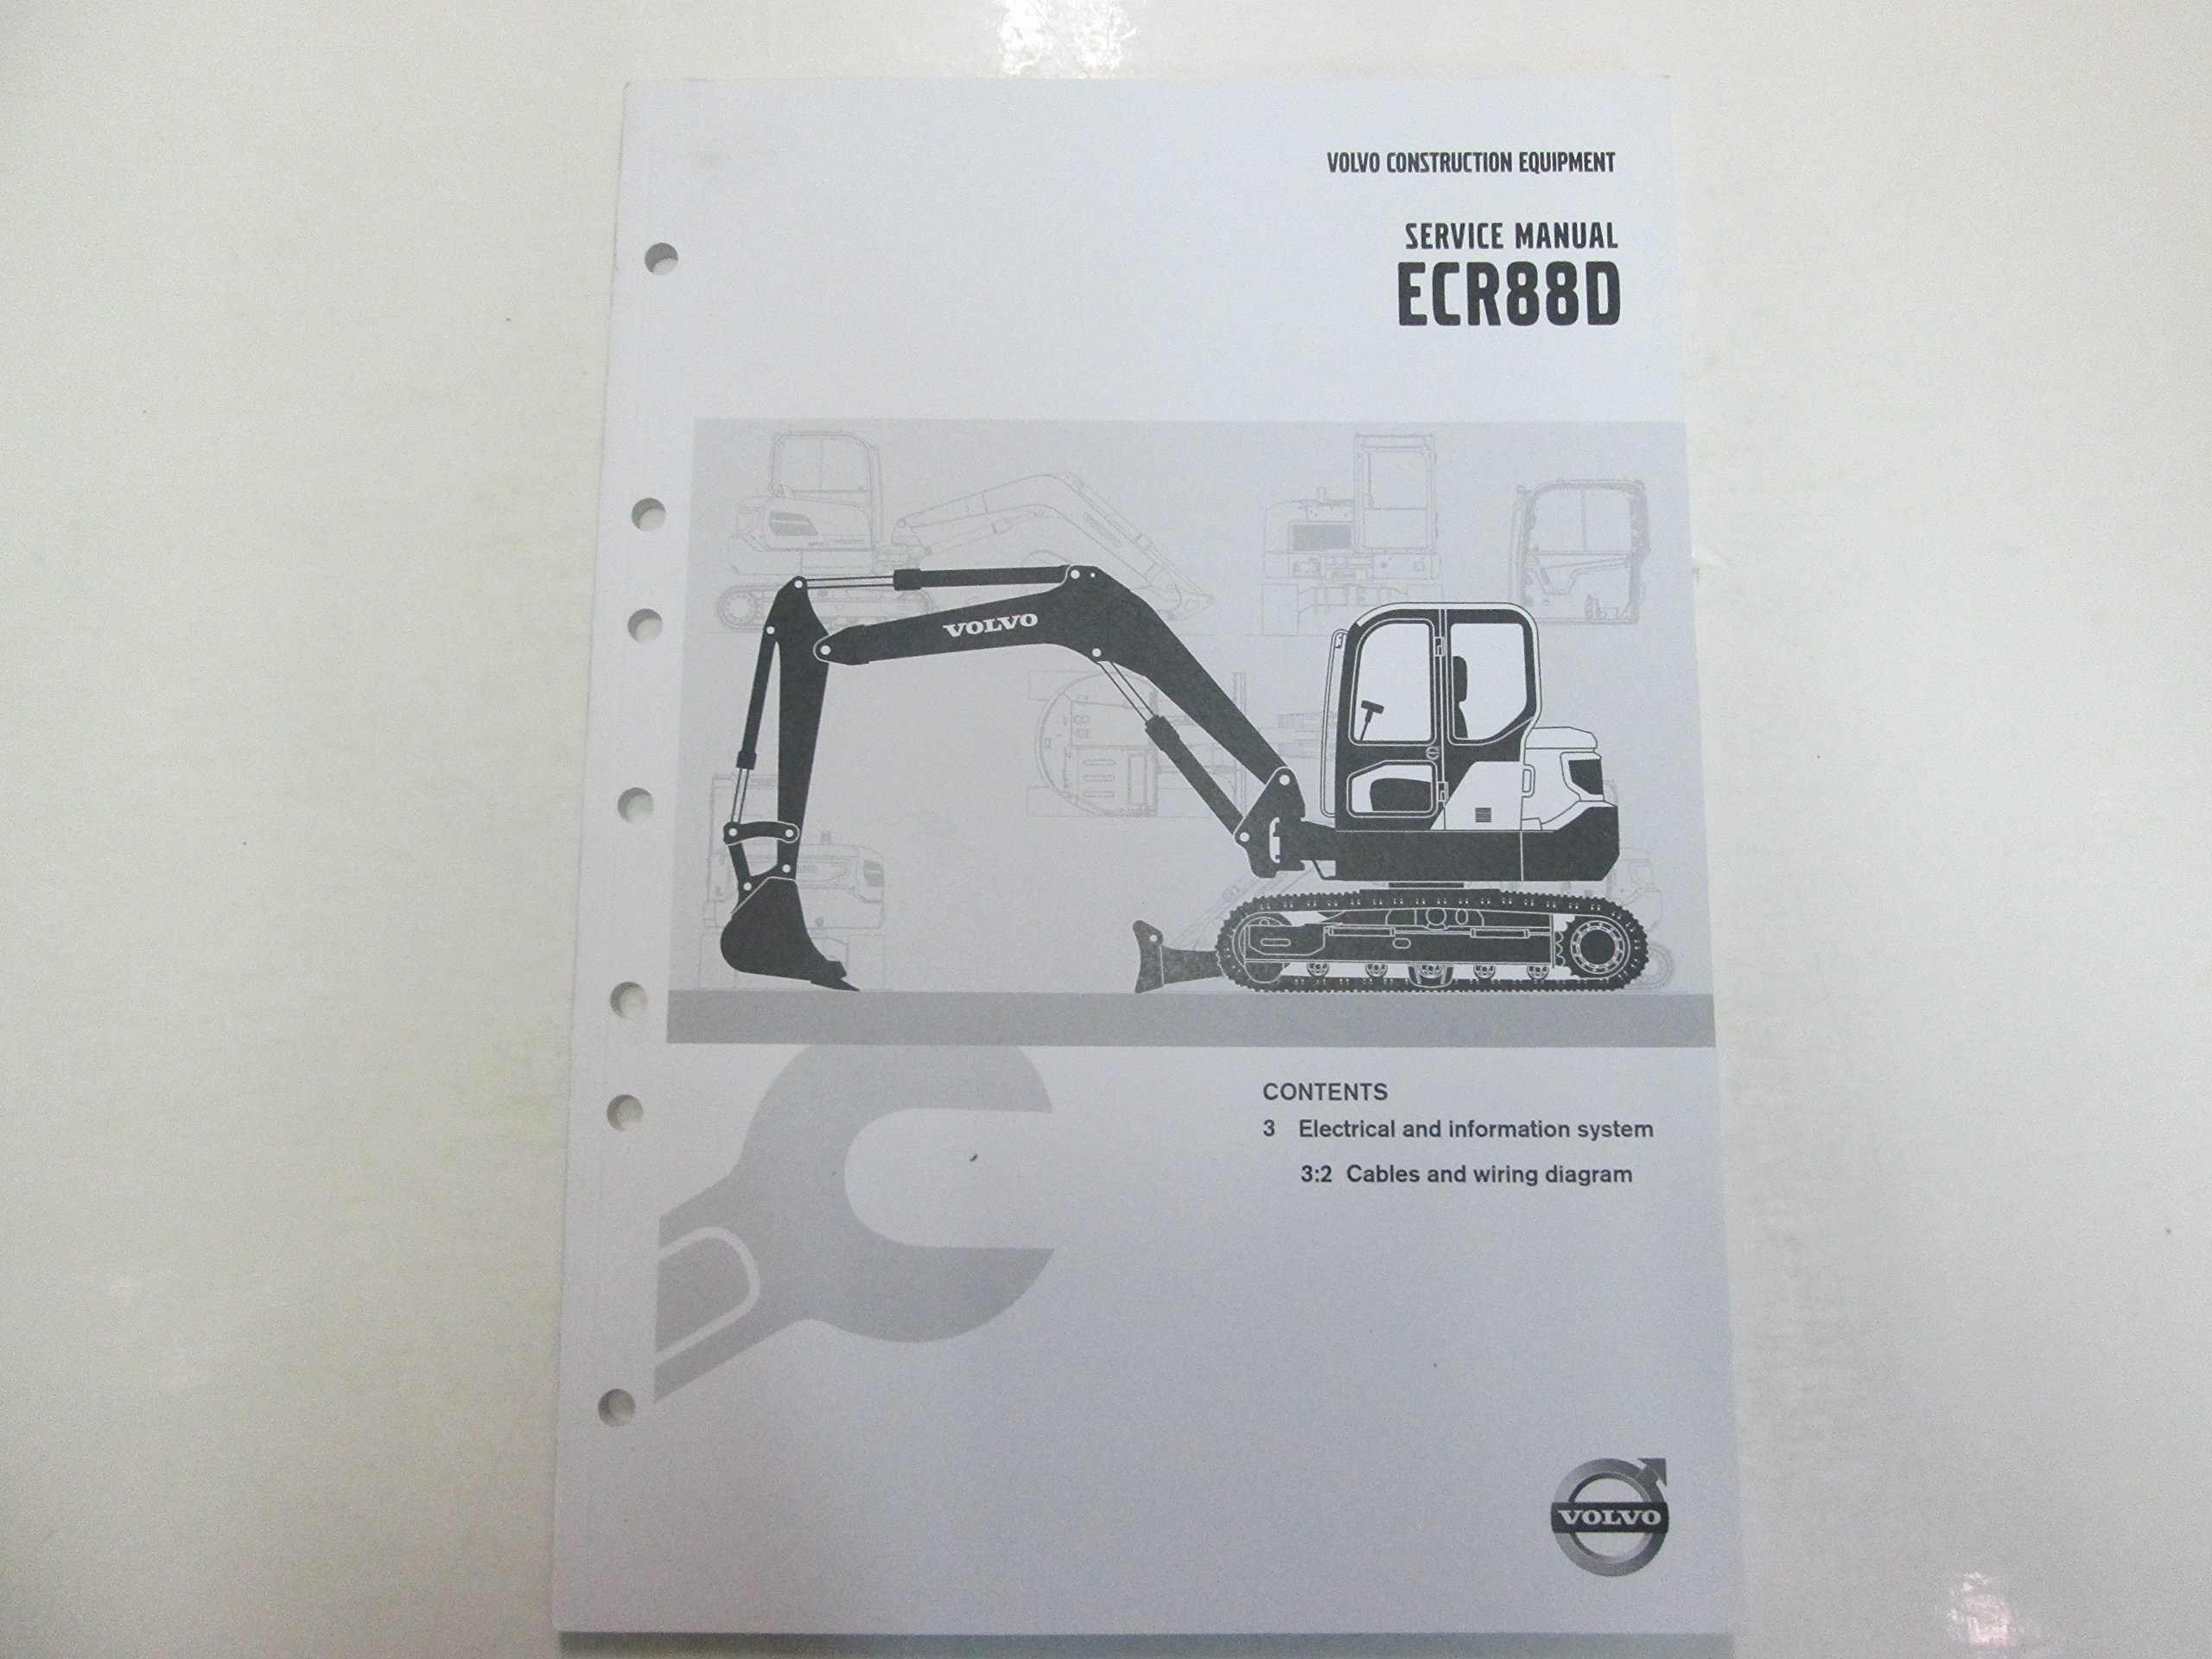 2014 volvo ecr88d electrical & info system cables wiring diagram manual  deal ***: volvo: amazon com: books